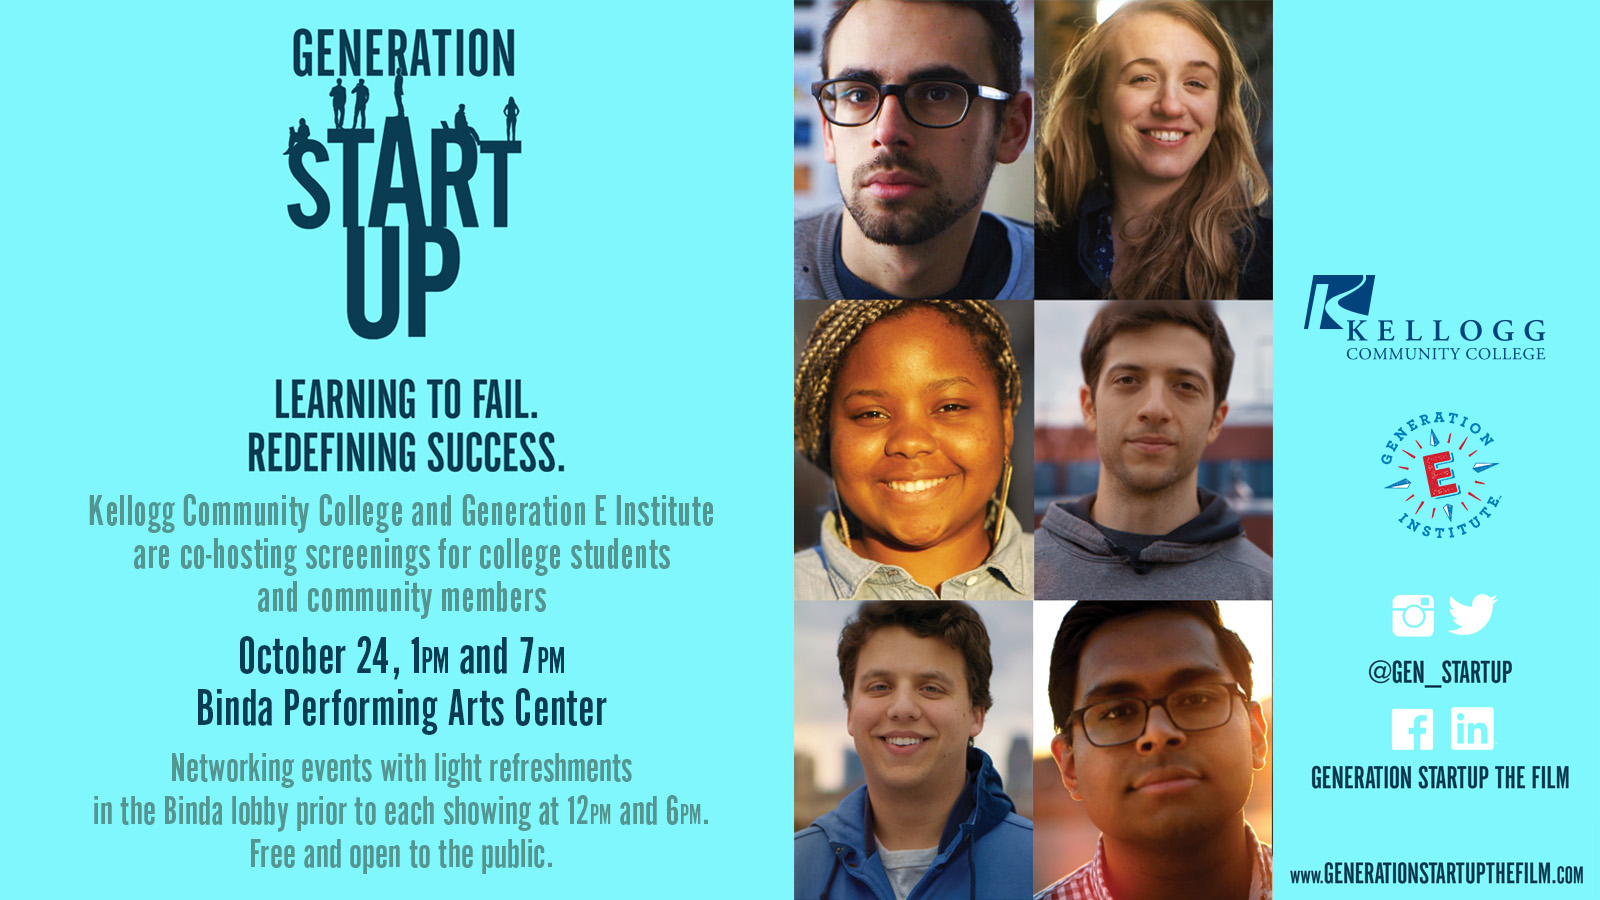 """Portraits of entrepreneurs on a text slide promoting a KCC screening of the documentary """"Generation Startup"""" on Oct. 24."""